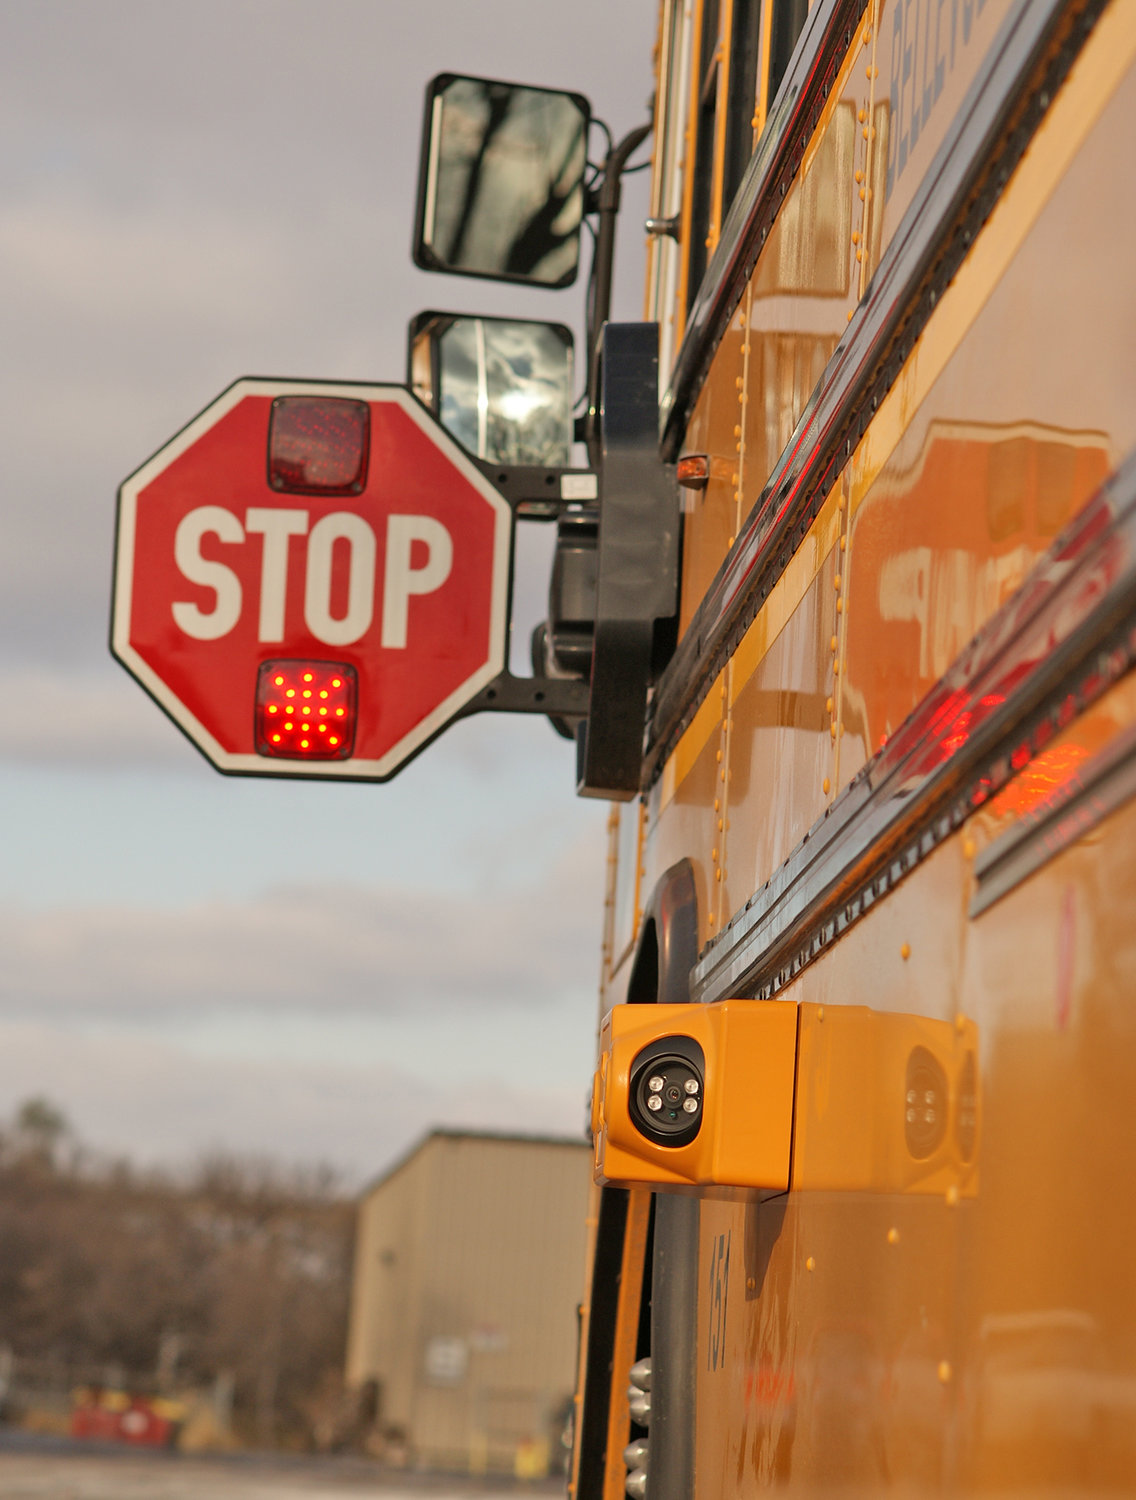 STOP, DON'T PASS —An automated camera is shown on a stopped school bus in an image provided by Verra Mobility, the Arizona company chosen by Oneida County for a program to crack down on drivers who pass stopped school buses. The system is designed to automatically document an infraction, which can result in a civil penalty on the vehicle's operator. School districts may take part at no expected cost, according to the county.